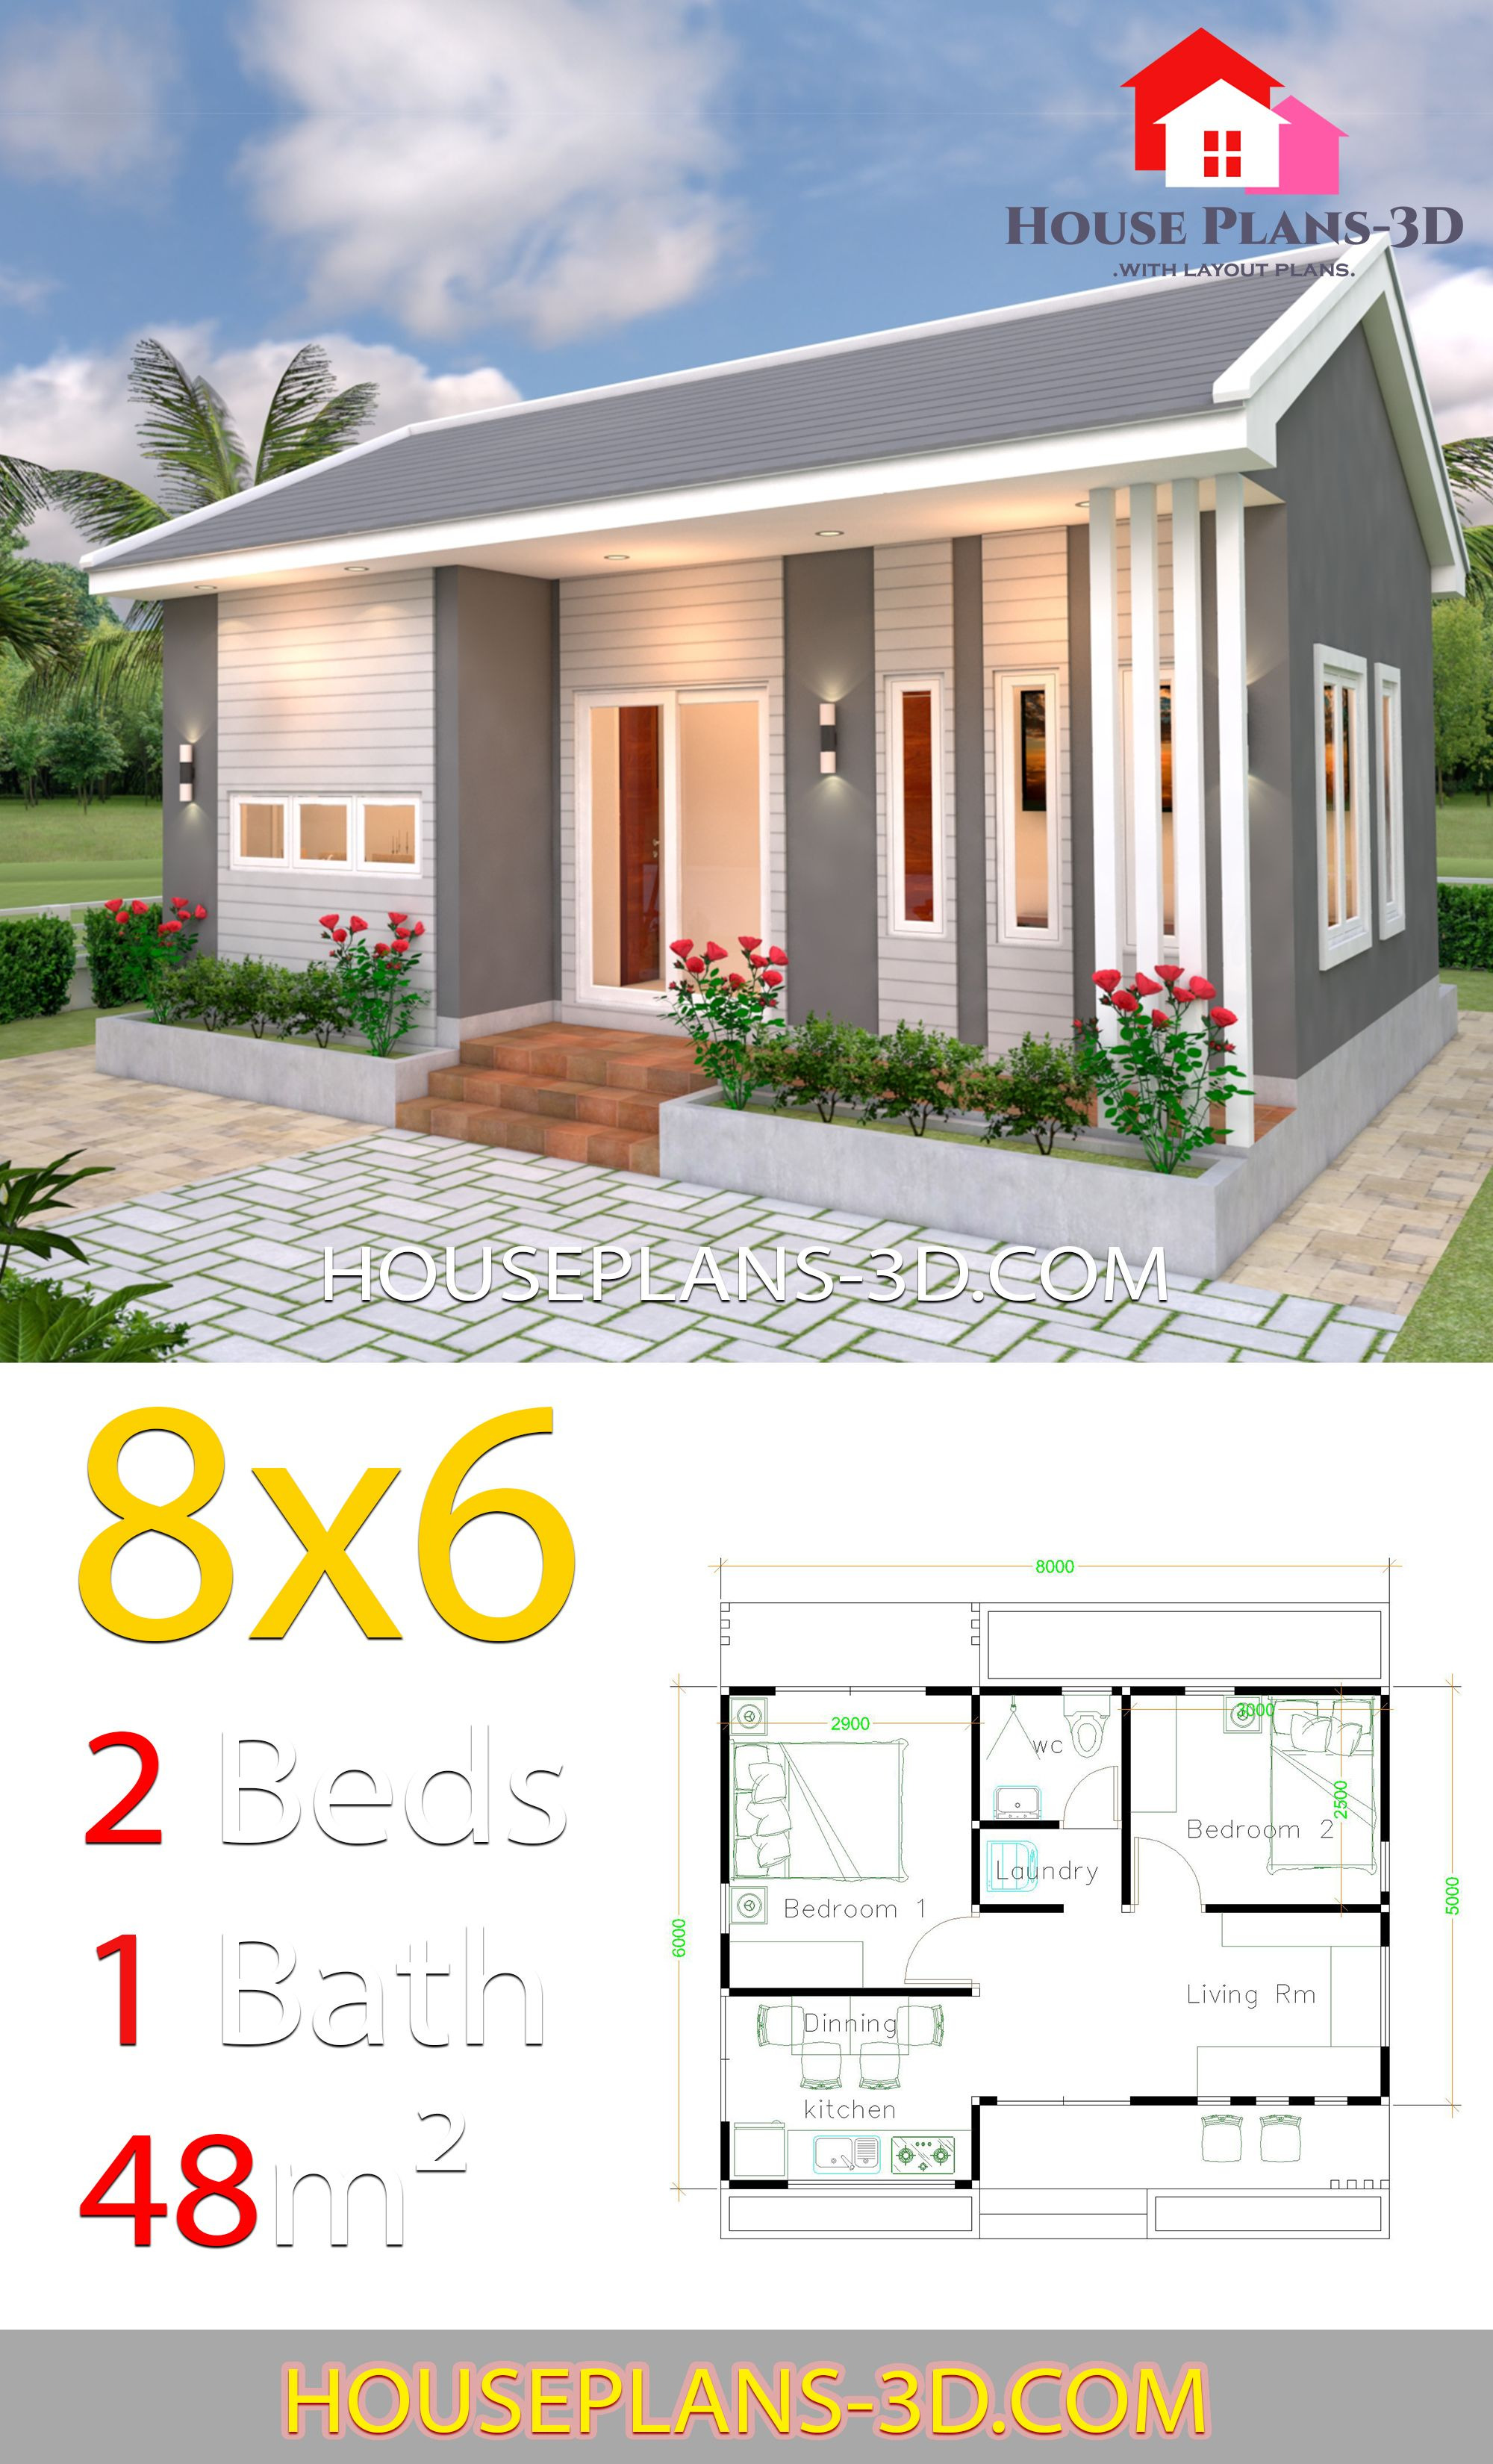 2 Bedroom House Designs Pictures Inspirational House Design Plans 8x6 with 2 Bedrooms House Plans 3d